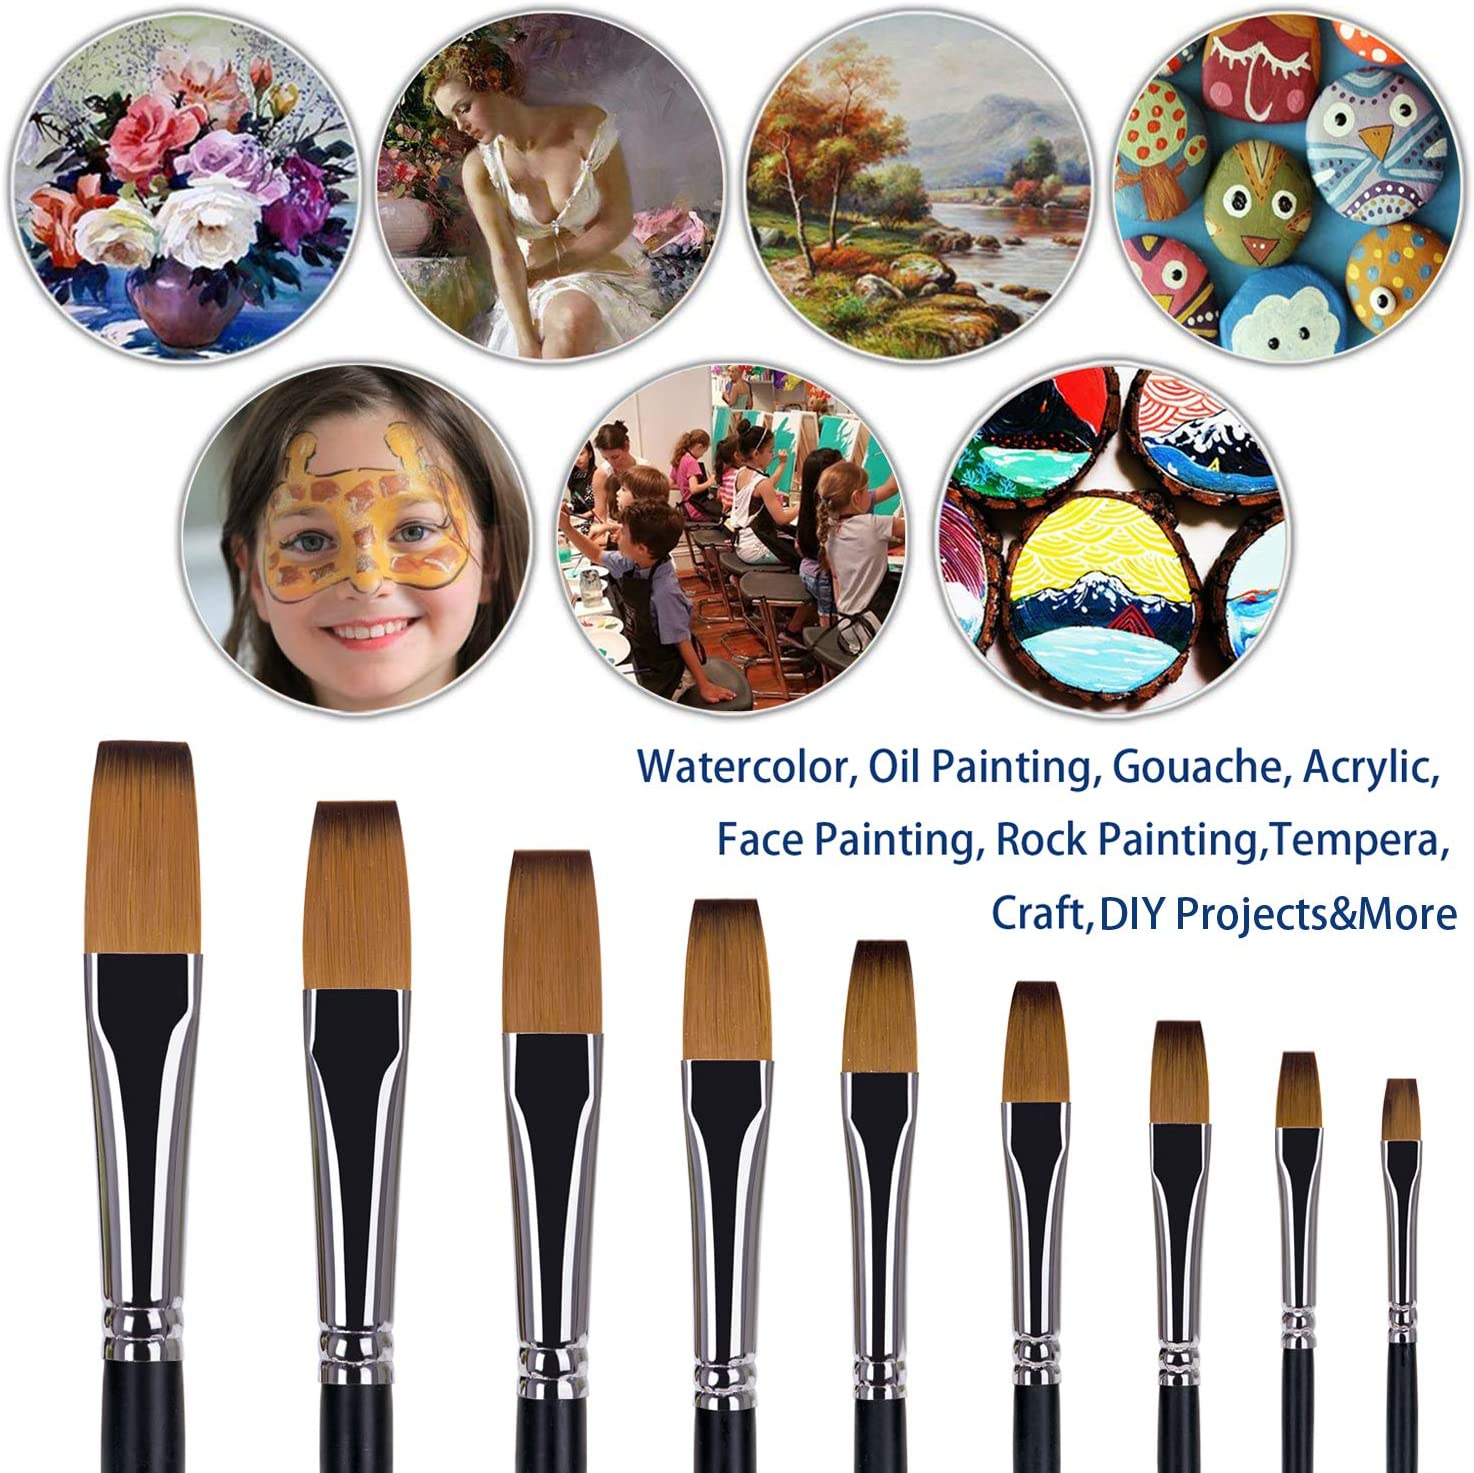 9pcs Watercolor Brushes Artist Round Paint Brushes Set Paint Brushes Round Pointed Tip Nylon Hair Artist Acrylic Brush Watercolor Oil Painting for Watercolors,Acrylics,Inks,Gouache,Oil and Tempera